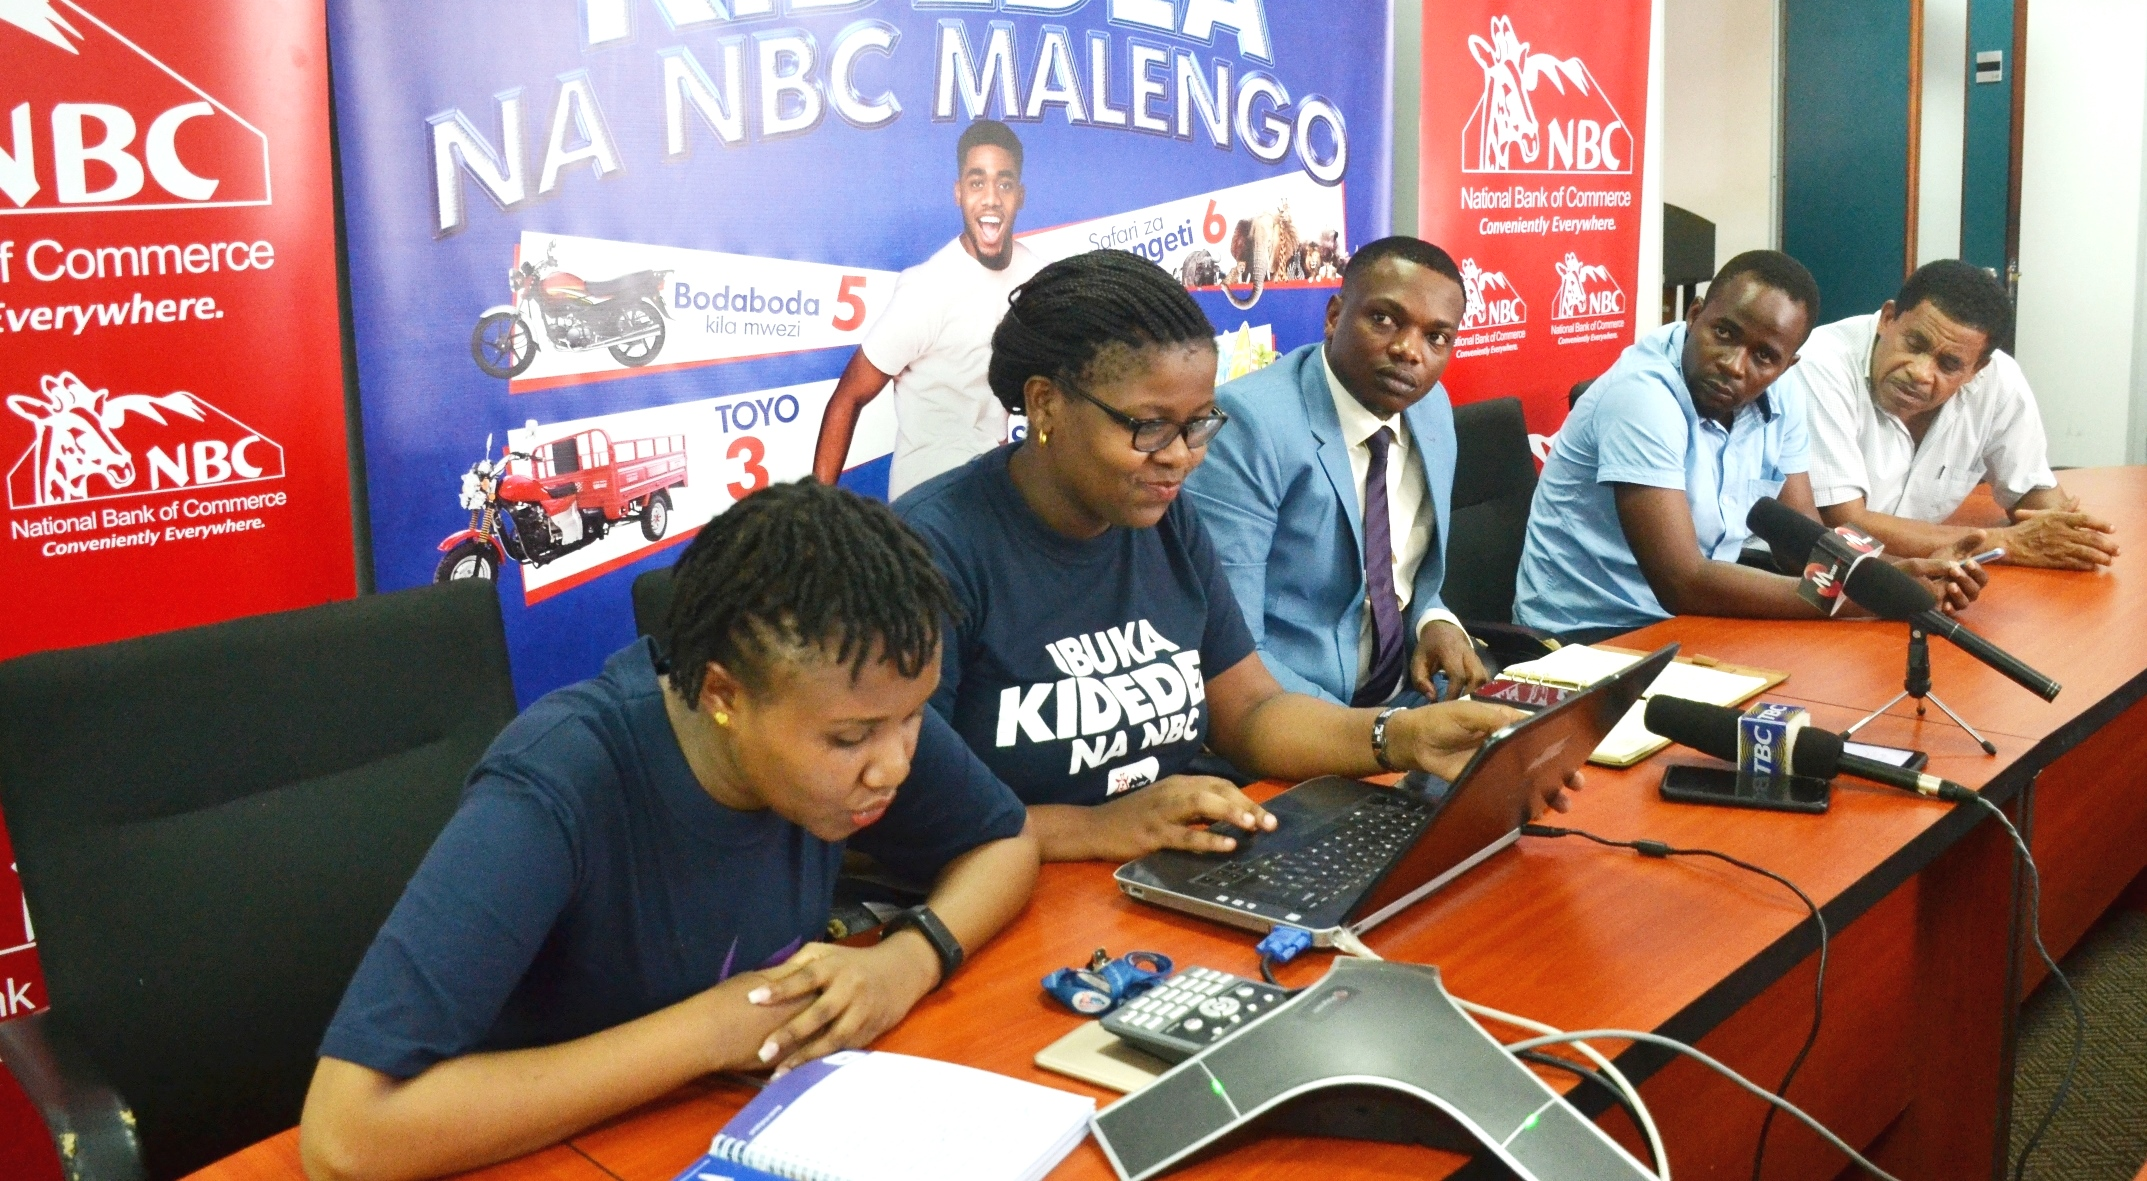 Use malengo account to resolve financial woes, says NBC